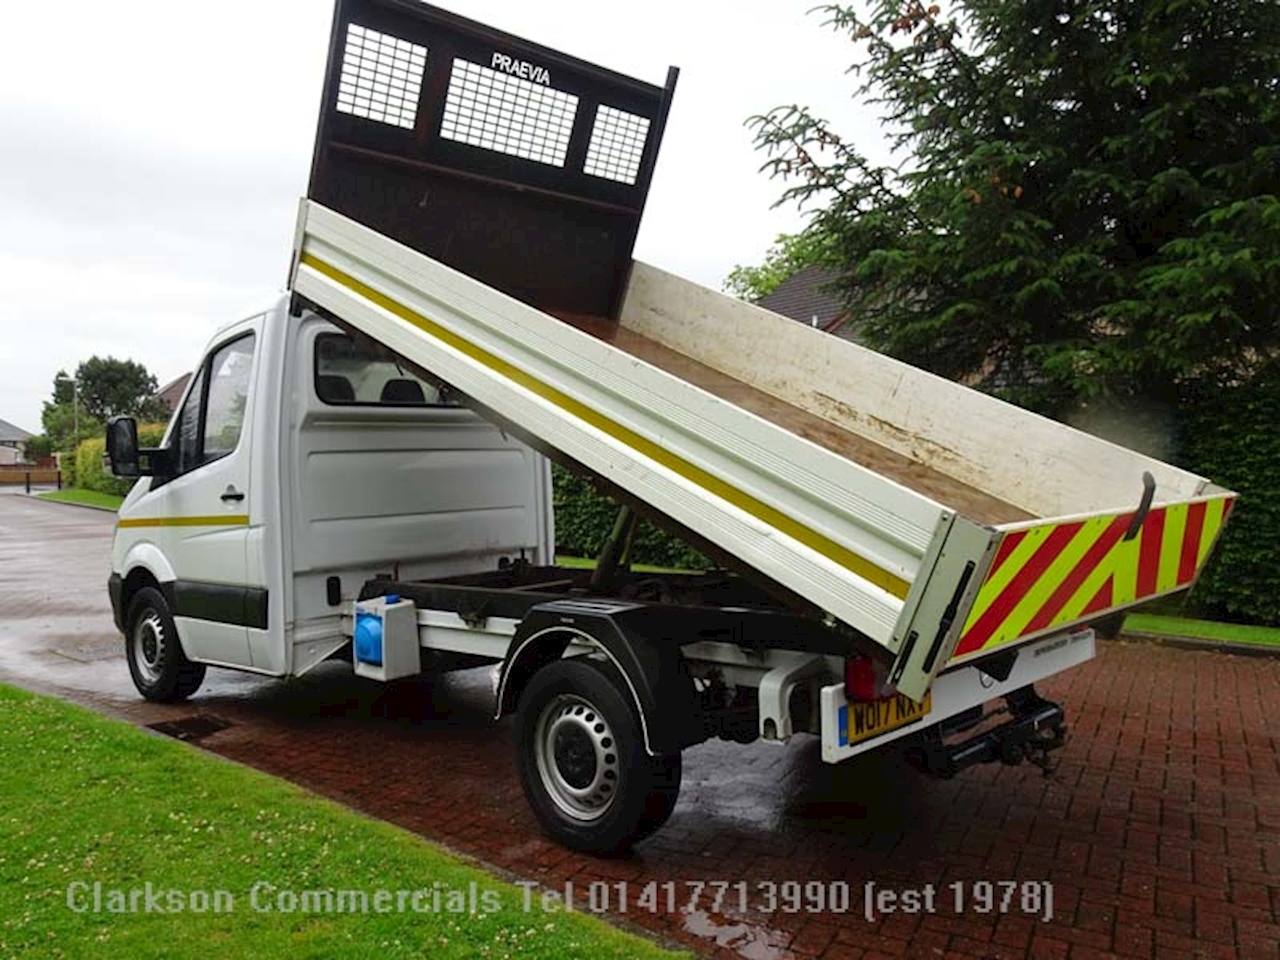 Mercedes-Benz Sprinter 314Cdi Single cab tipper, one owner, 54900, alloy capes 2.1 Tipper Manual Diesel